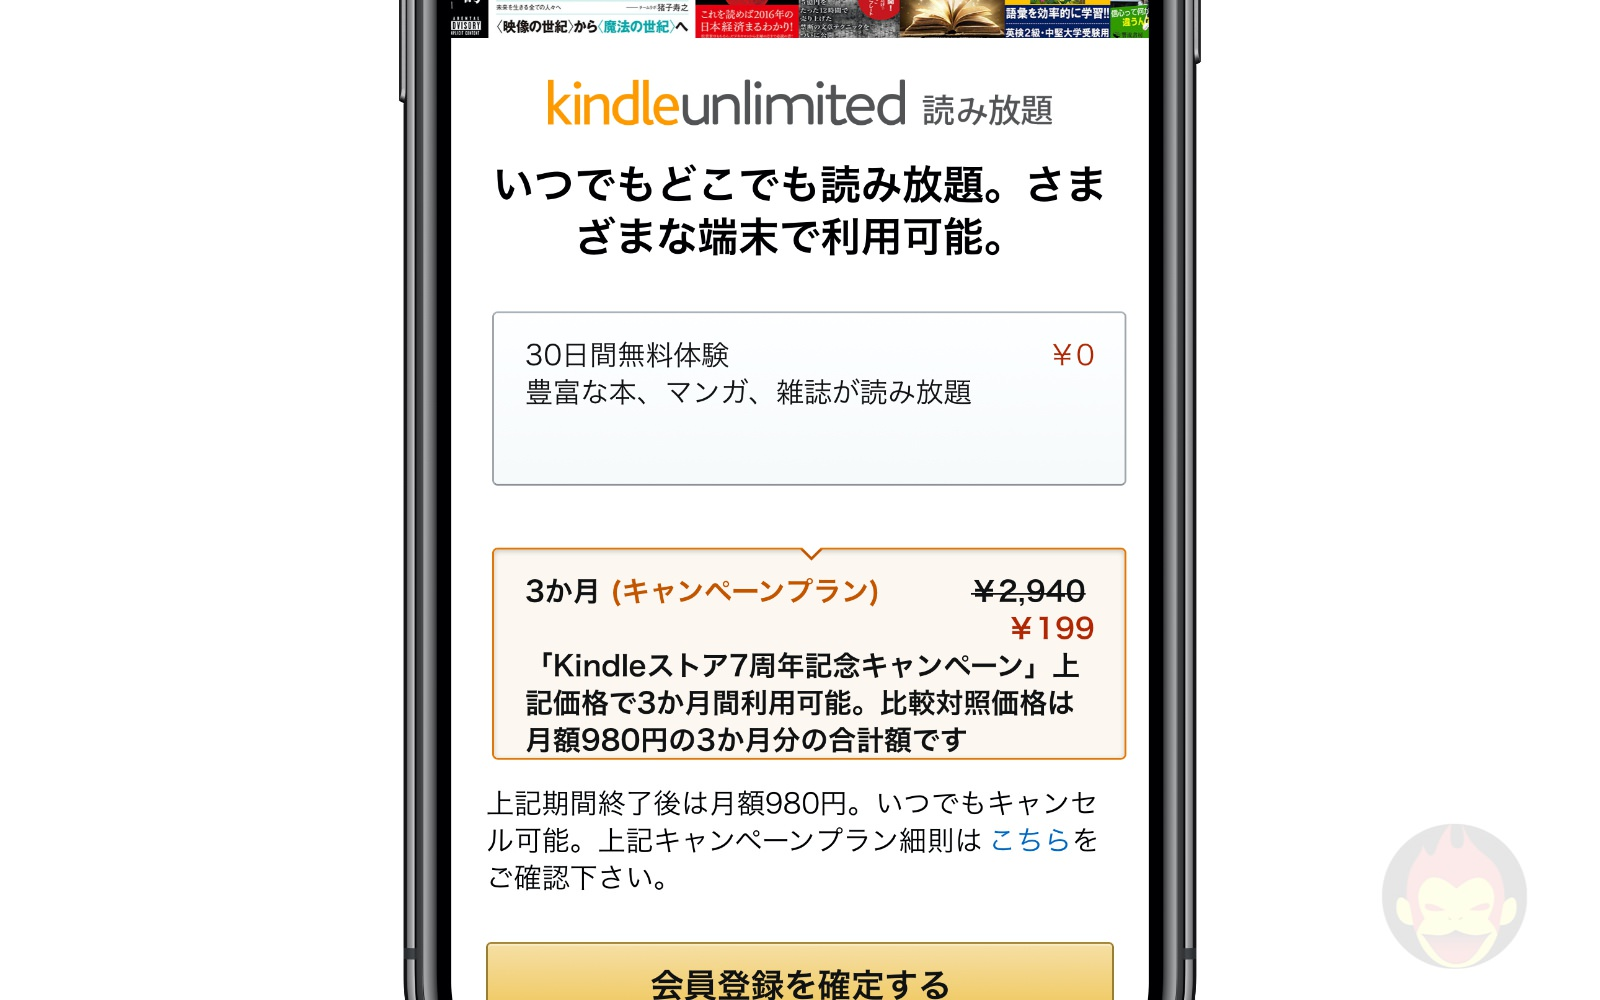 Kindle Unlimited 3month free campaign iphone